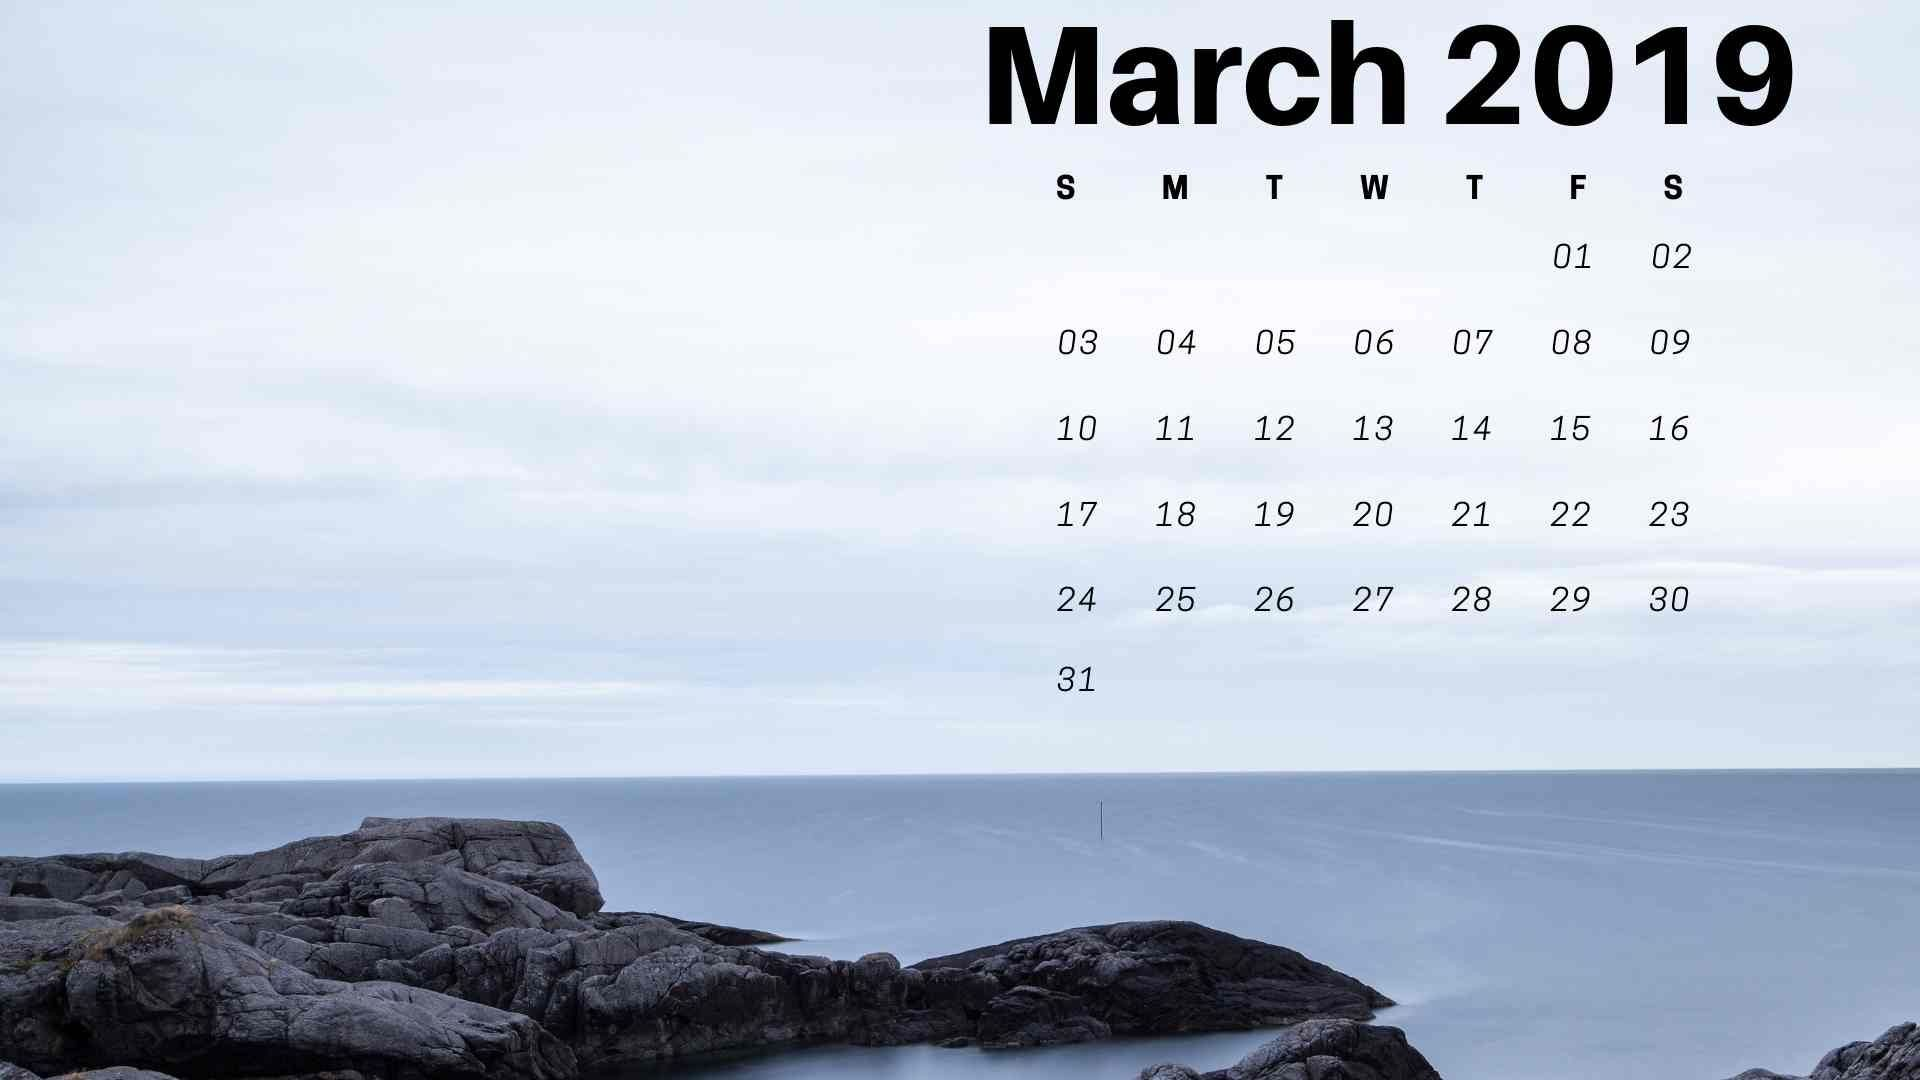 March 2019 Calendar India Más Arriba-a-fecha March 2019 Calendar Wallpaper Desktop March Calendar Calenda2019 Of March 2019 Calendar India Más Recientemente Liberado Home the National Institute Of Open Schooling Nios